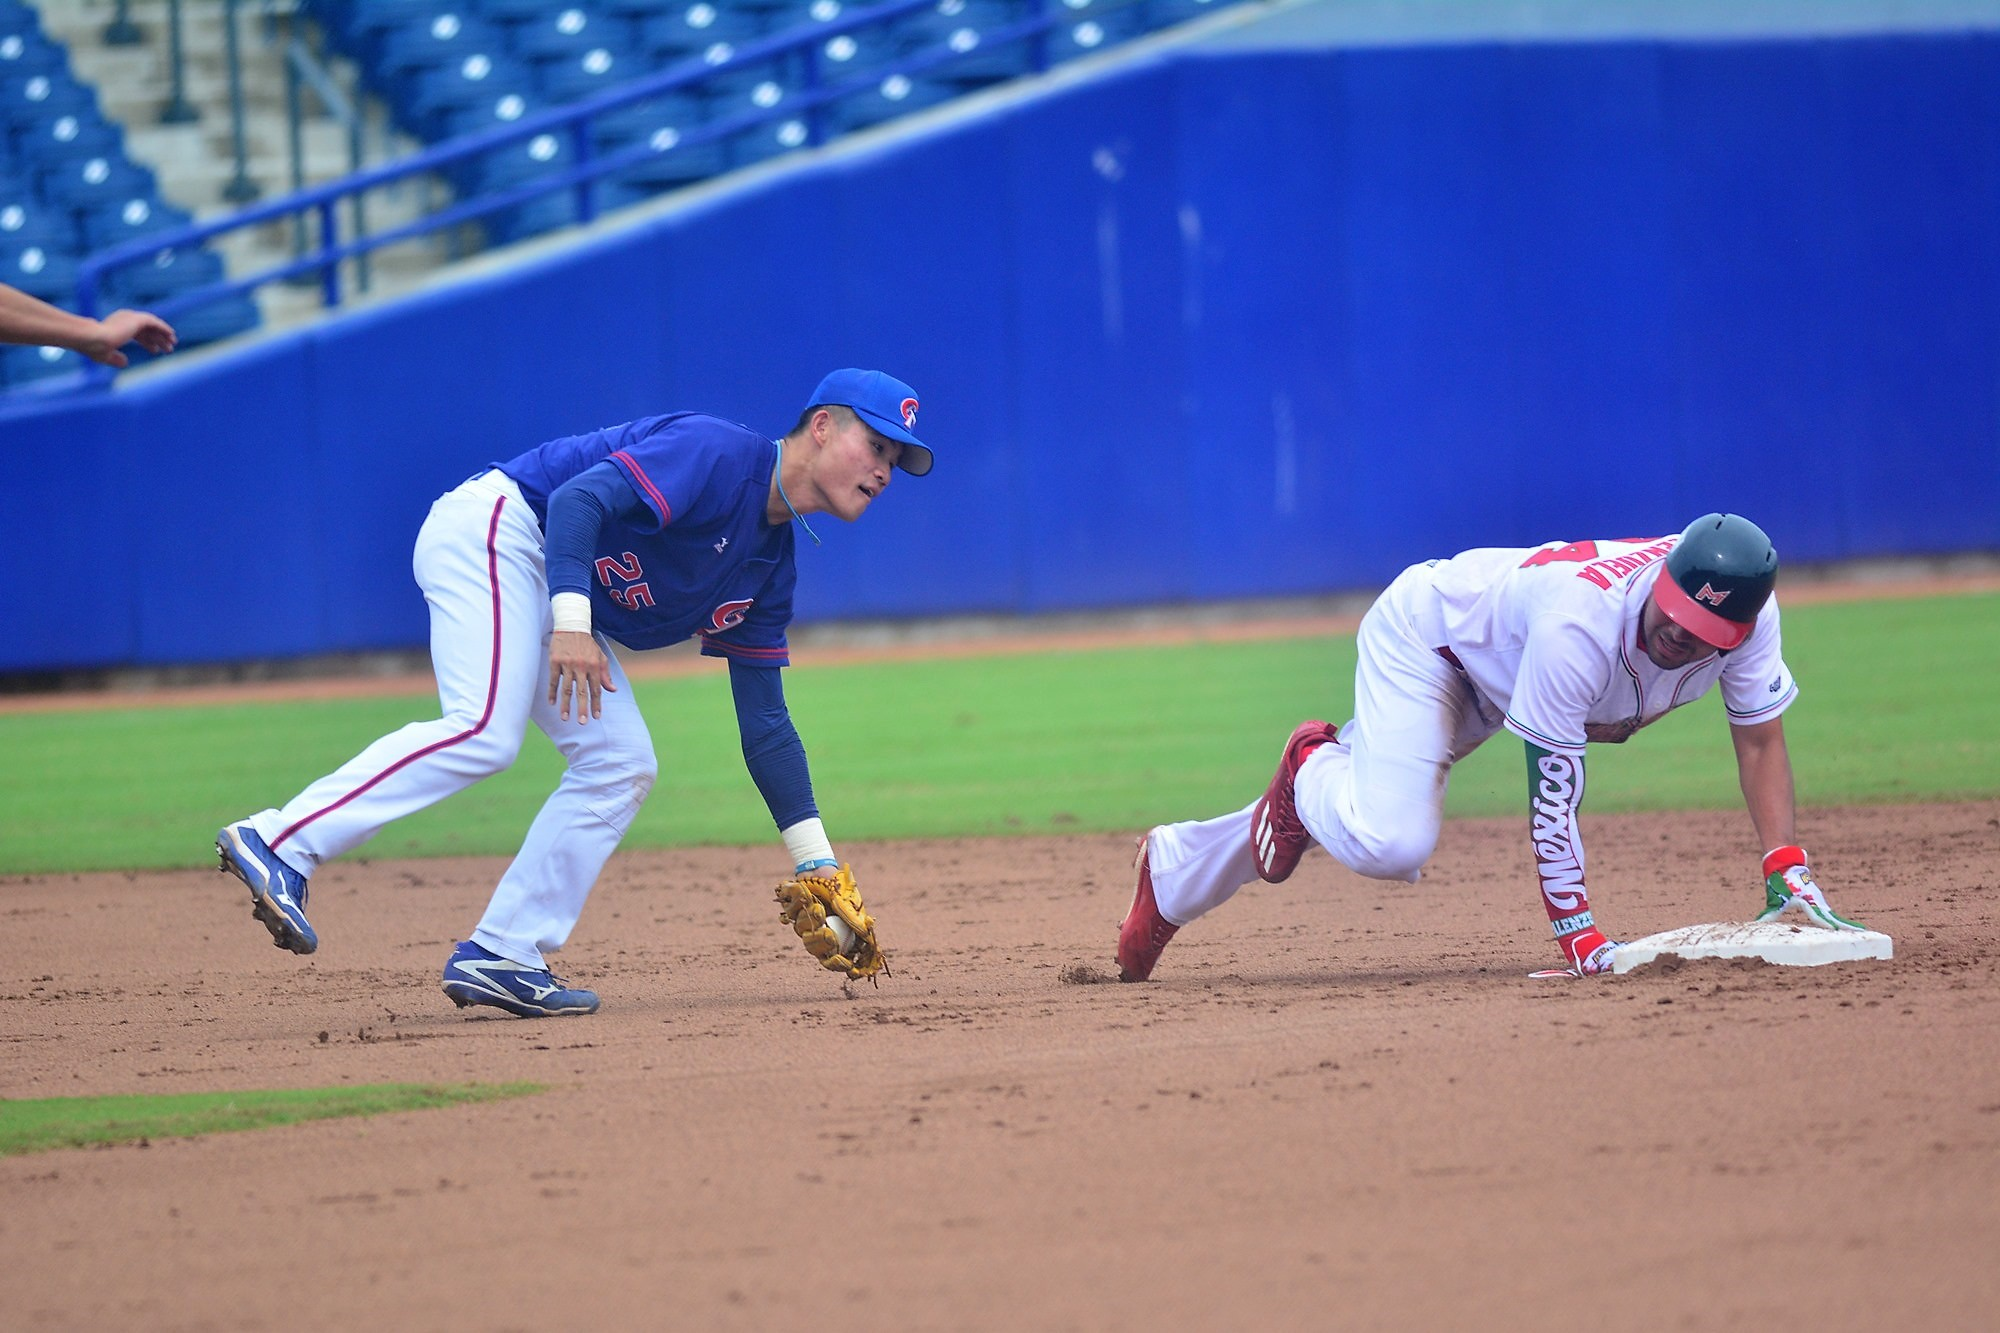 Mexico's Marco Jaime tries to avoid a tag by Cheng Hao Chun of Chinese Taipei